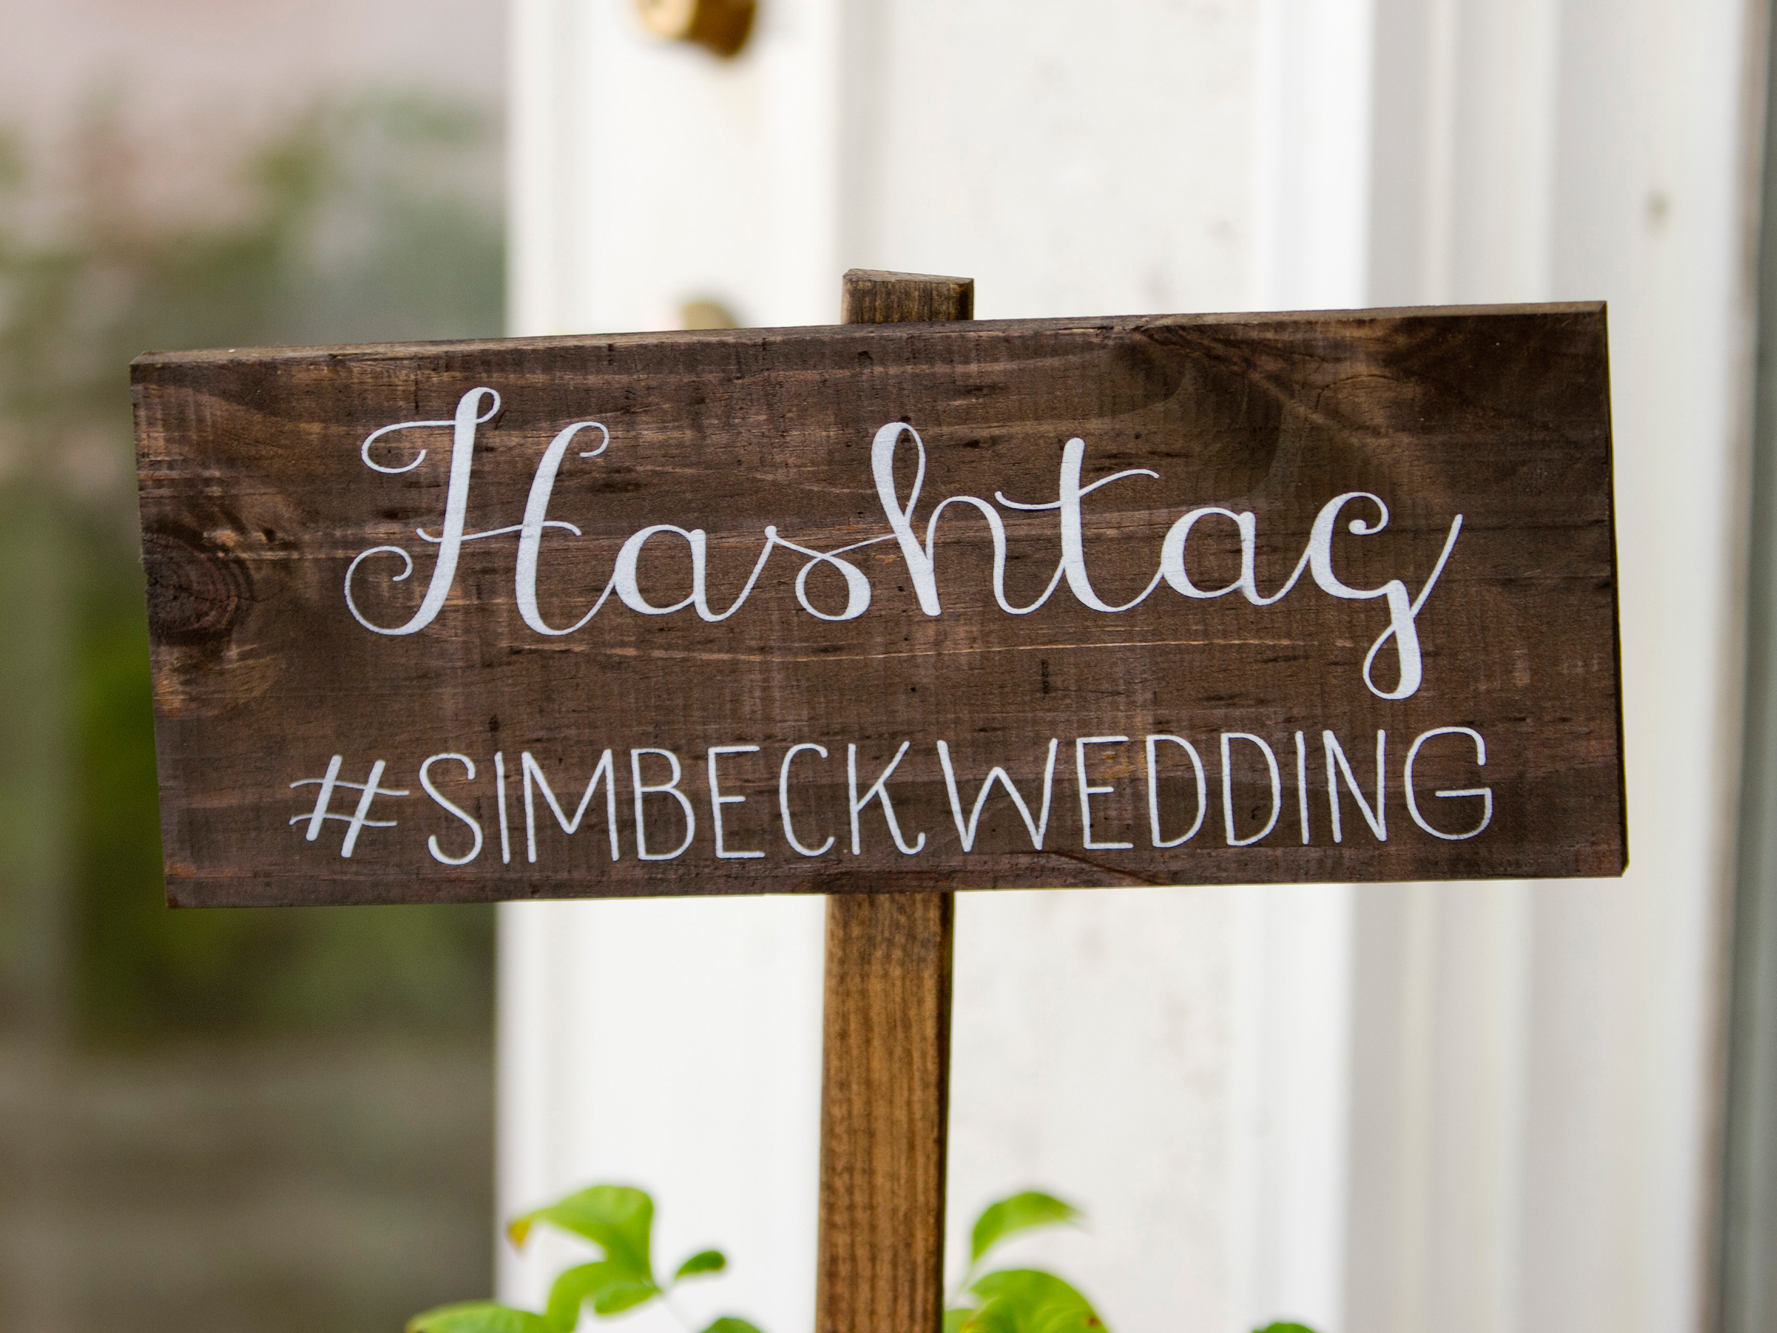 Destination wedding hashtag ideas